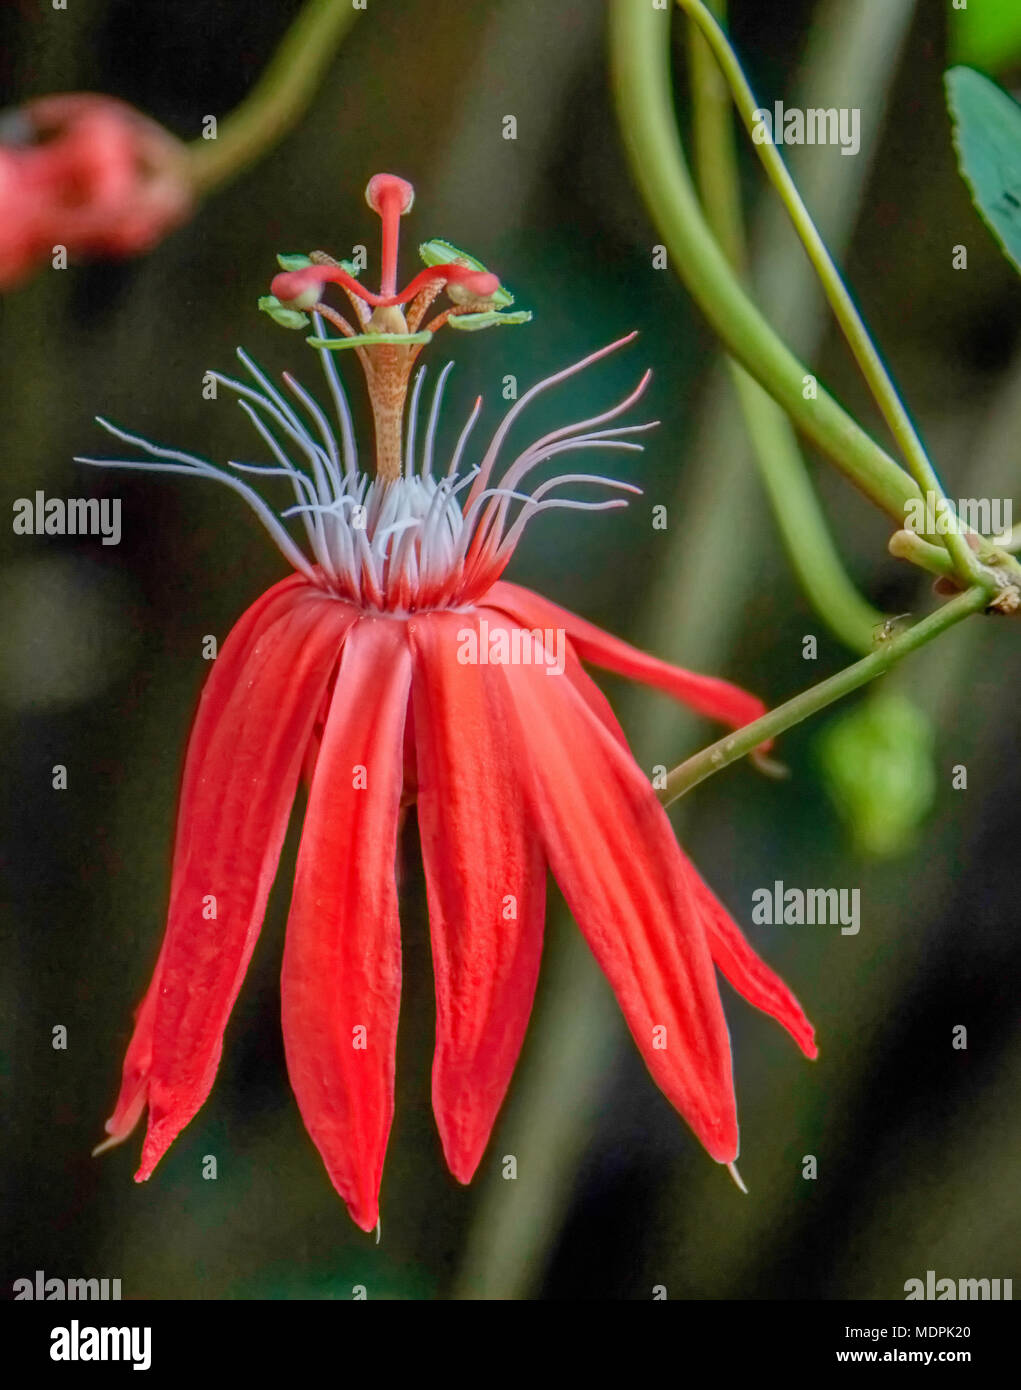 Flowers were mostly found in the canopy, as this one from a observation tower 4 stories high - Stock Image